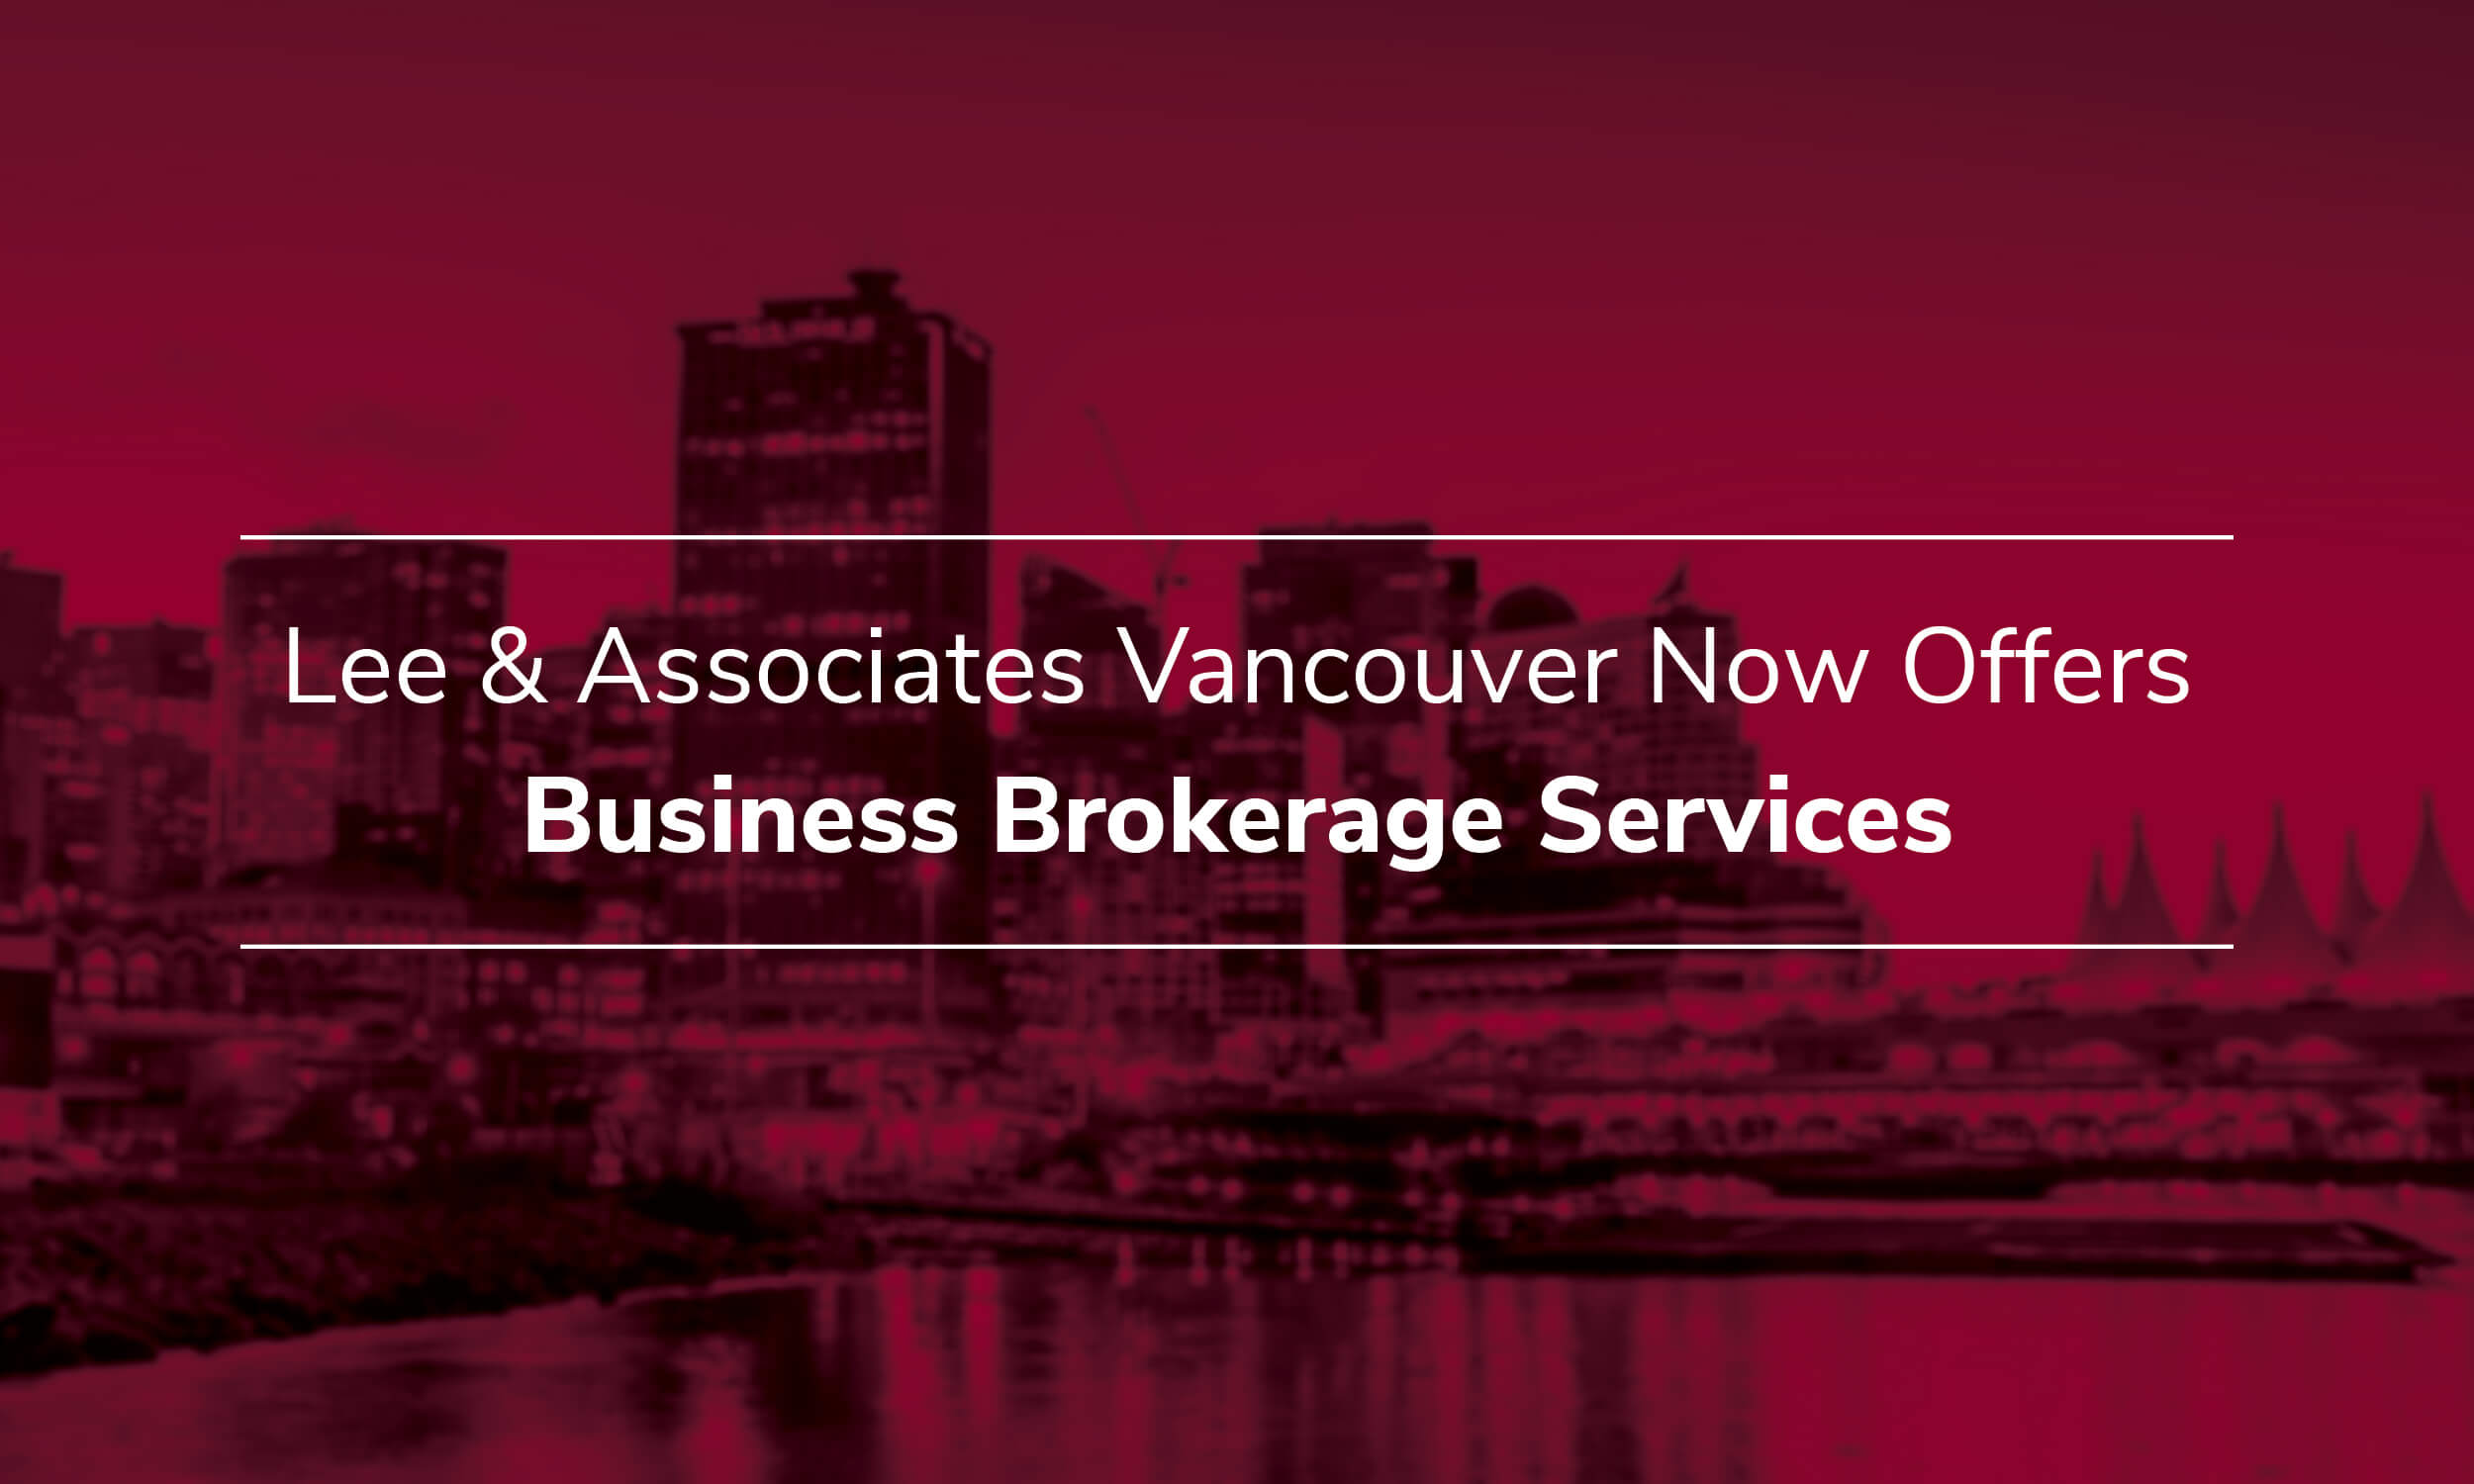 Lee & Associates Vancouver Expands Services to Include Business Brokerage with the Addition of John-Erik Grain